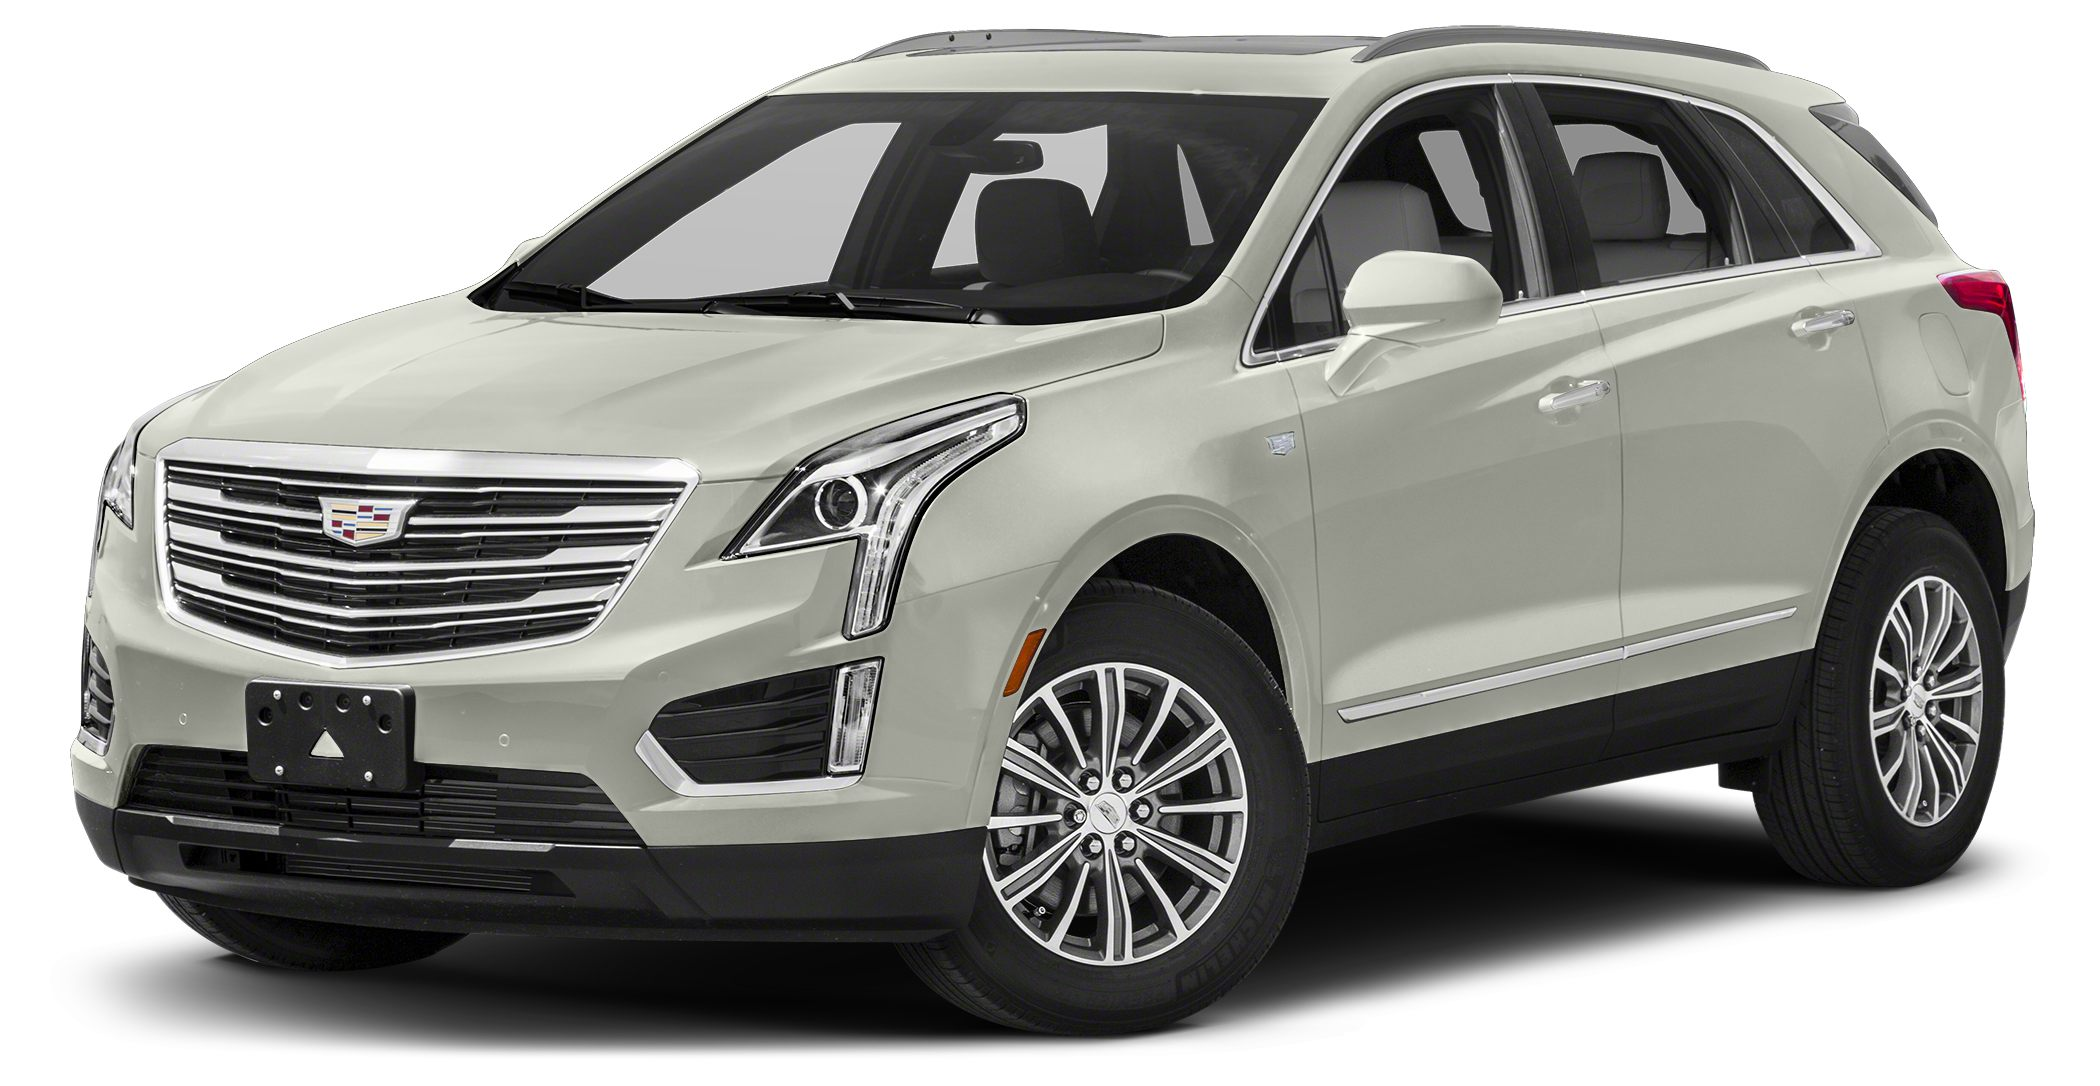 2018 Cadillac XT5 Luxury Crystal White 2018 Cadillac XT5 Luxury AWD 8-Speed Automatic 36L V6 DI V